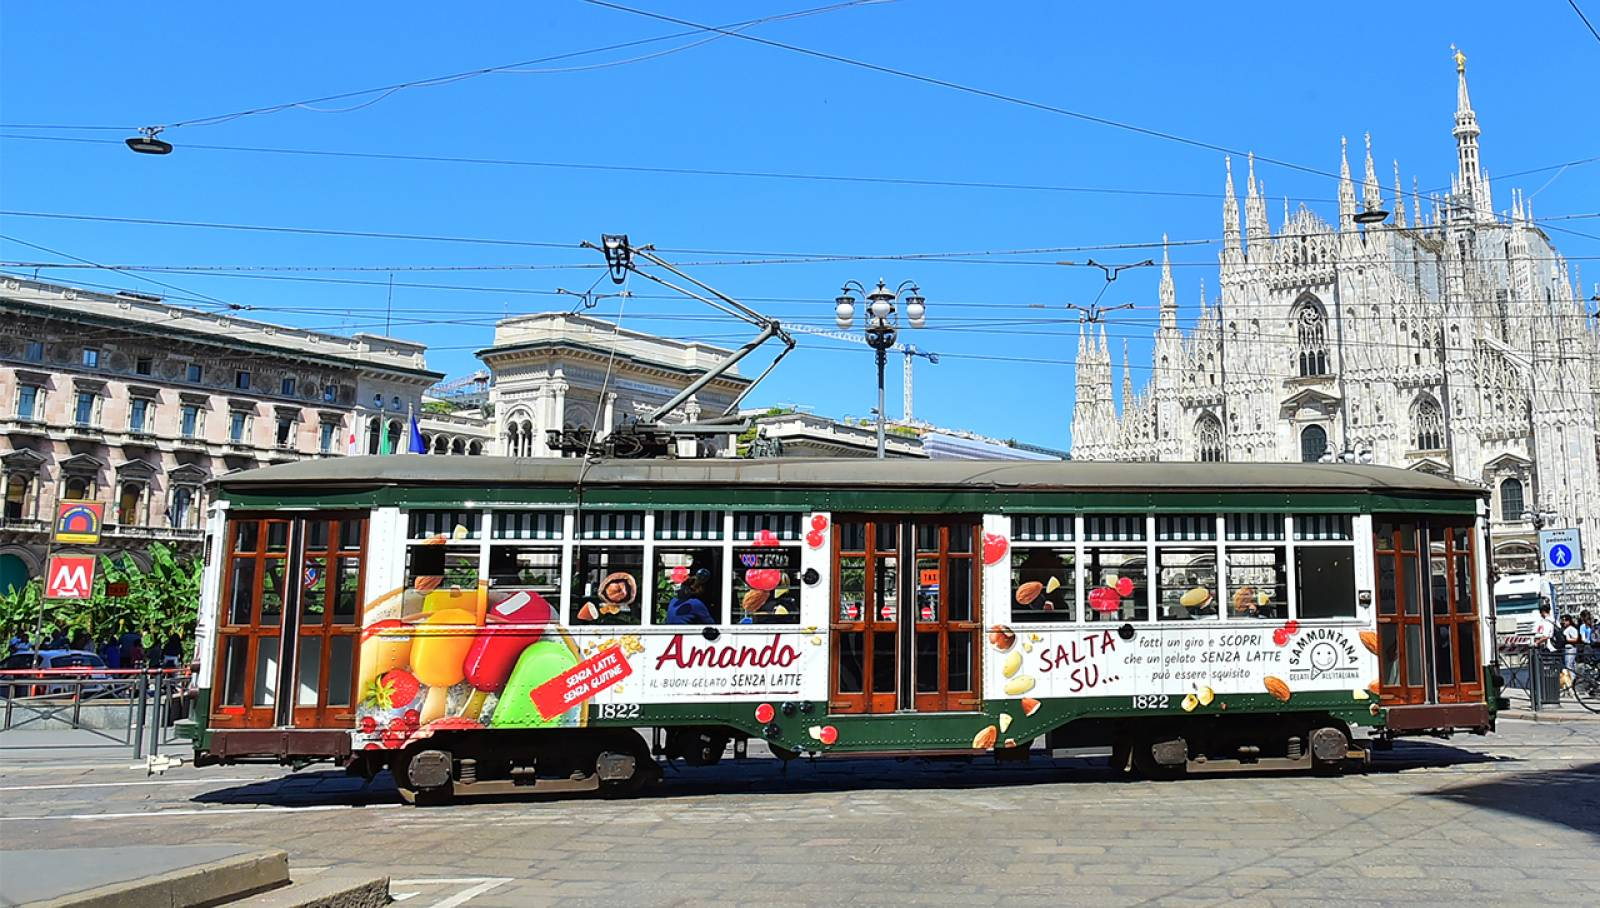 OOH IGPDecaux Creative Solutions Milan Special Tram for Sammontana